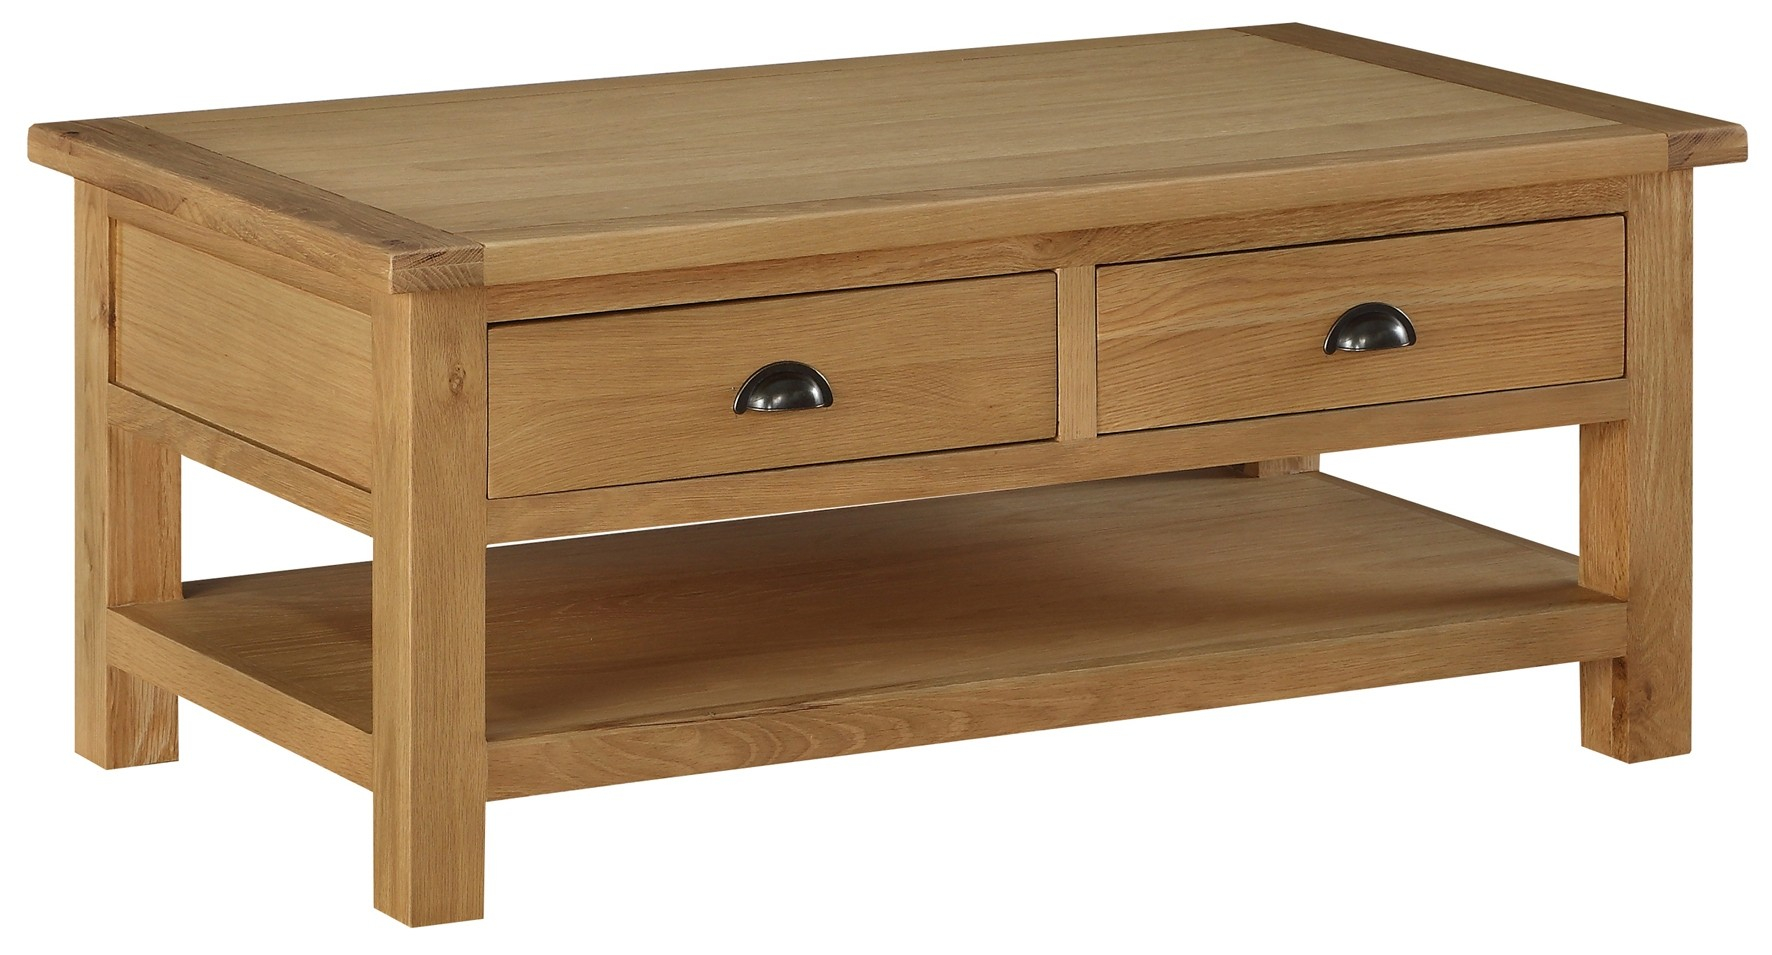 Sweet Dreams Kielder Solid Oak Coffee Table With 2 Drawers From The throughout proportions 1772 X 955